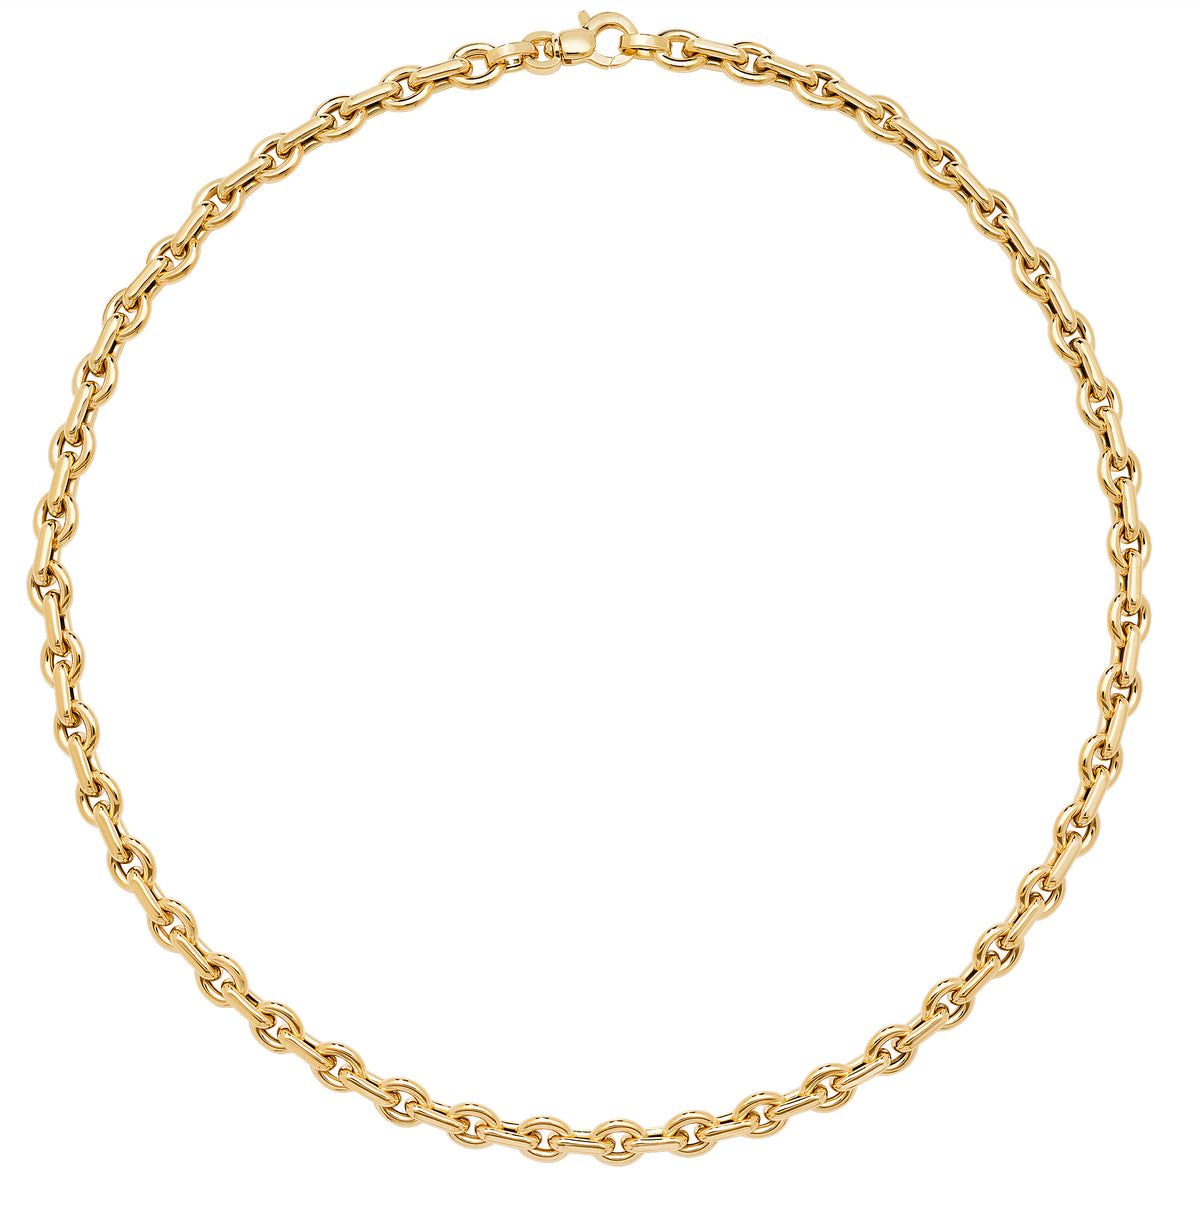 9ct Yellow Gold Chain Necklace